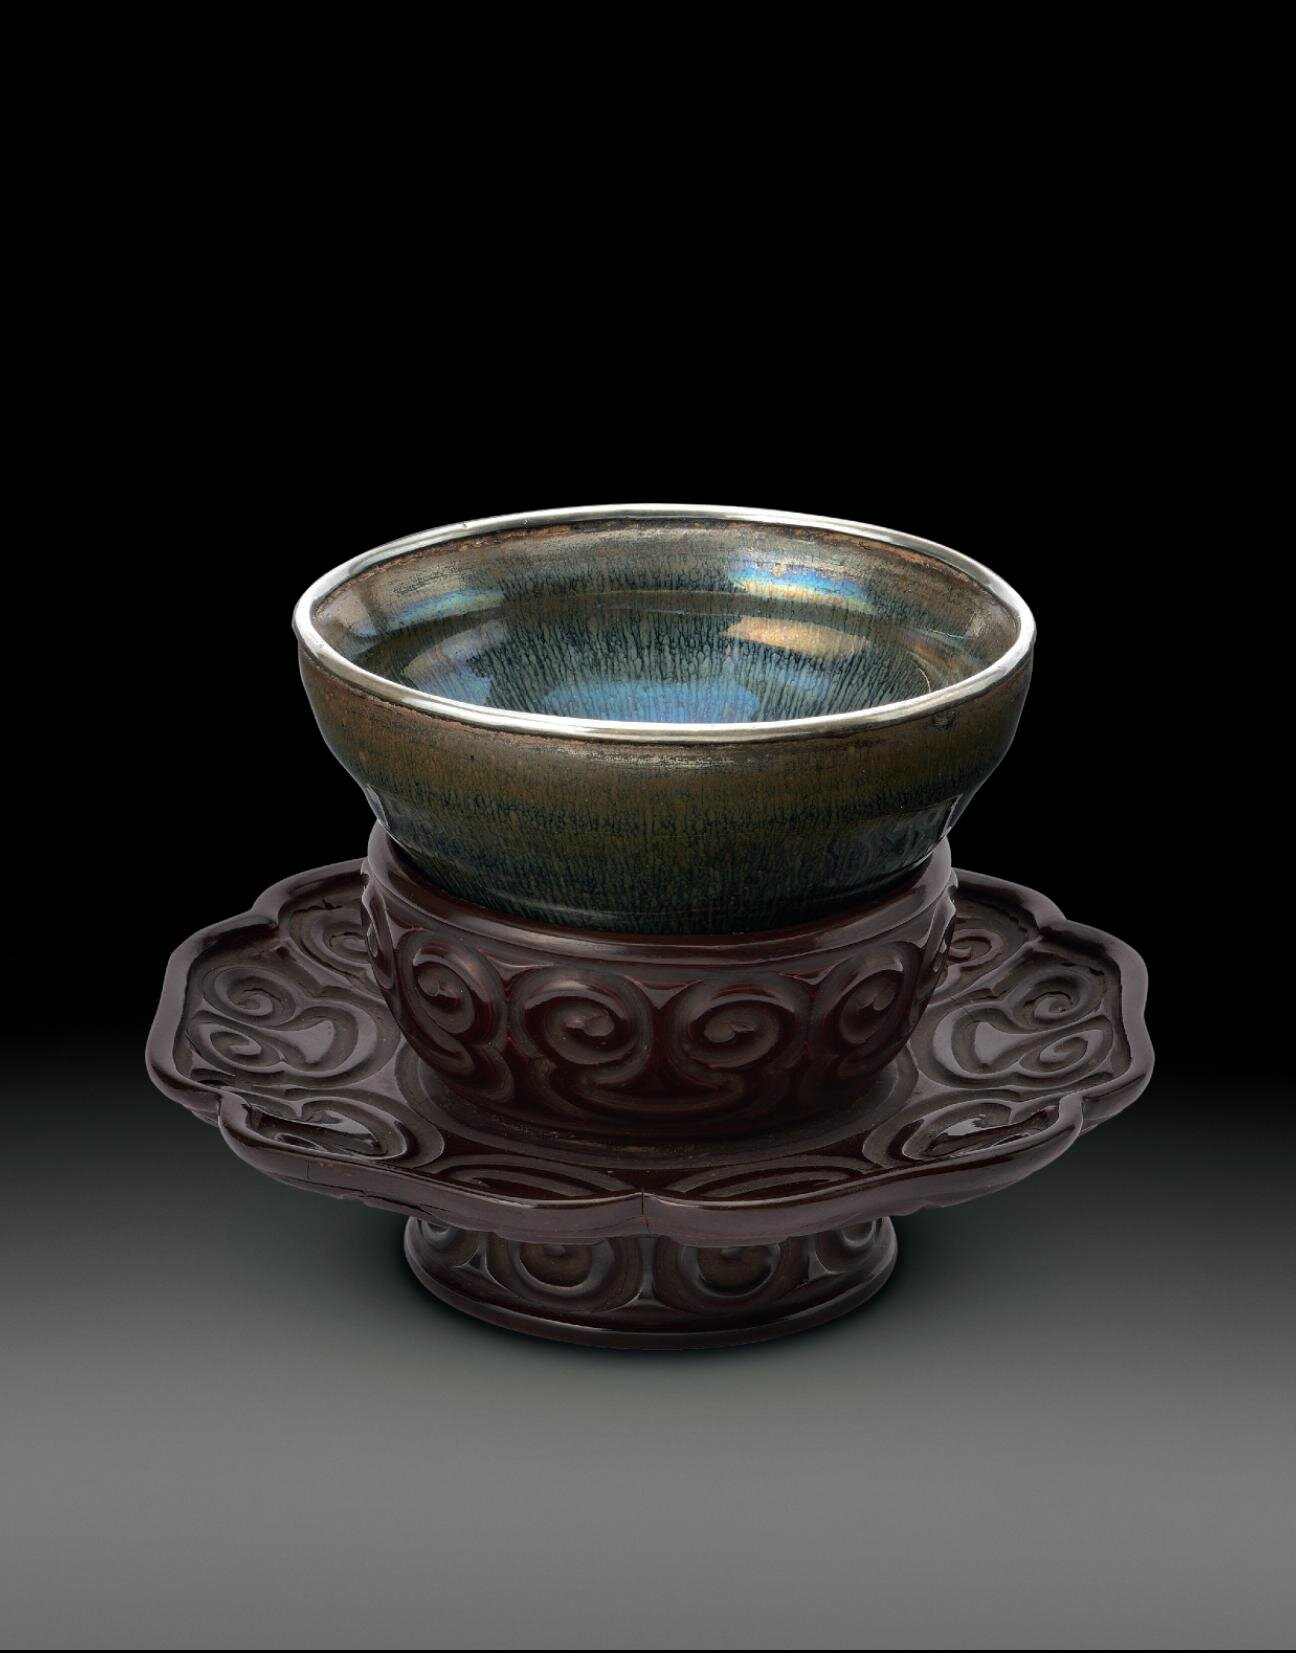 An exceptional Jianyao 'Hare's fur' tea bowl and atixilacquer stand bowl, Southern Song dynasty (1127-1279); lacquer stand, Southern Song-Yuan dynasty, 12th-13th century